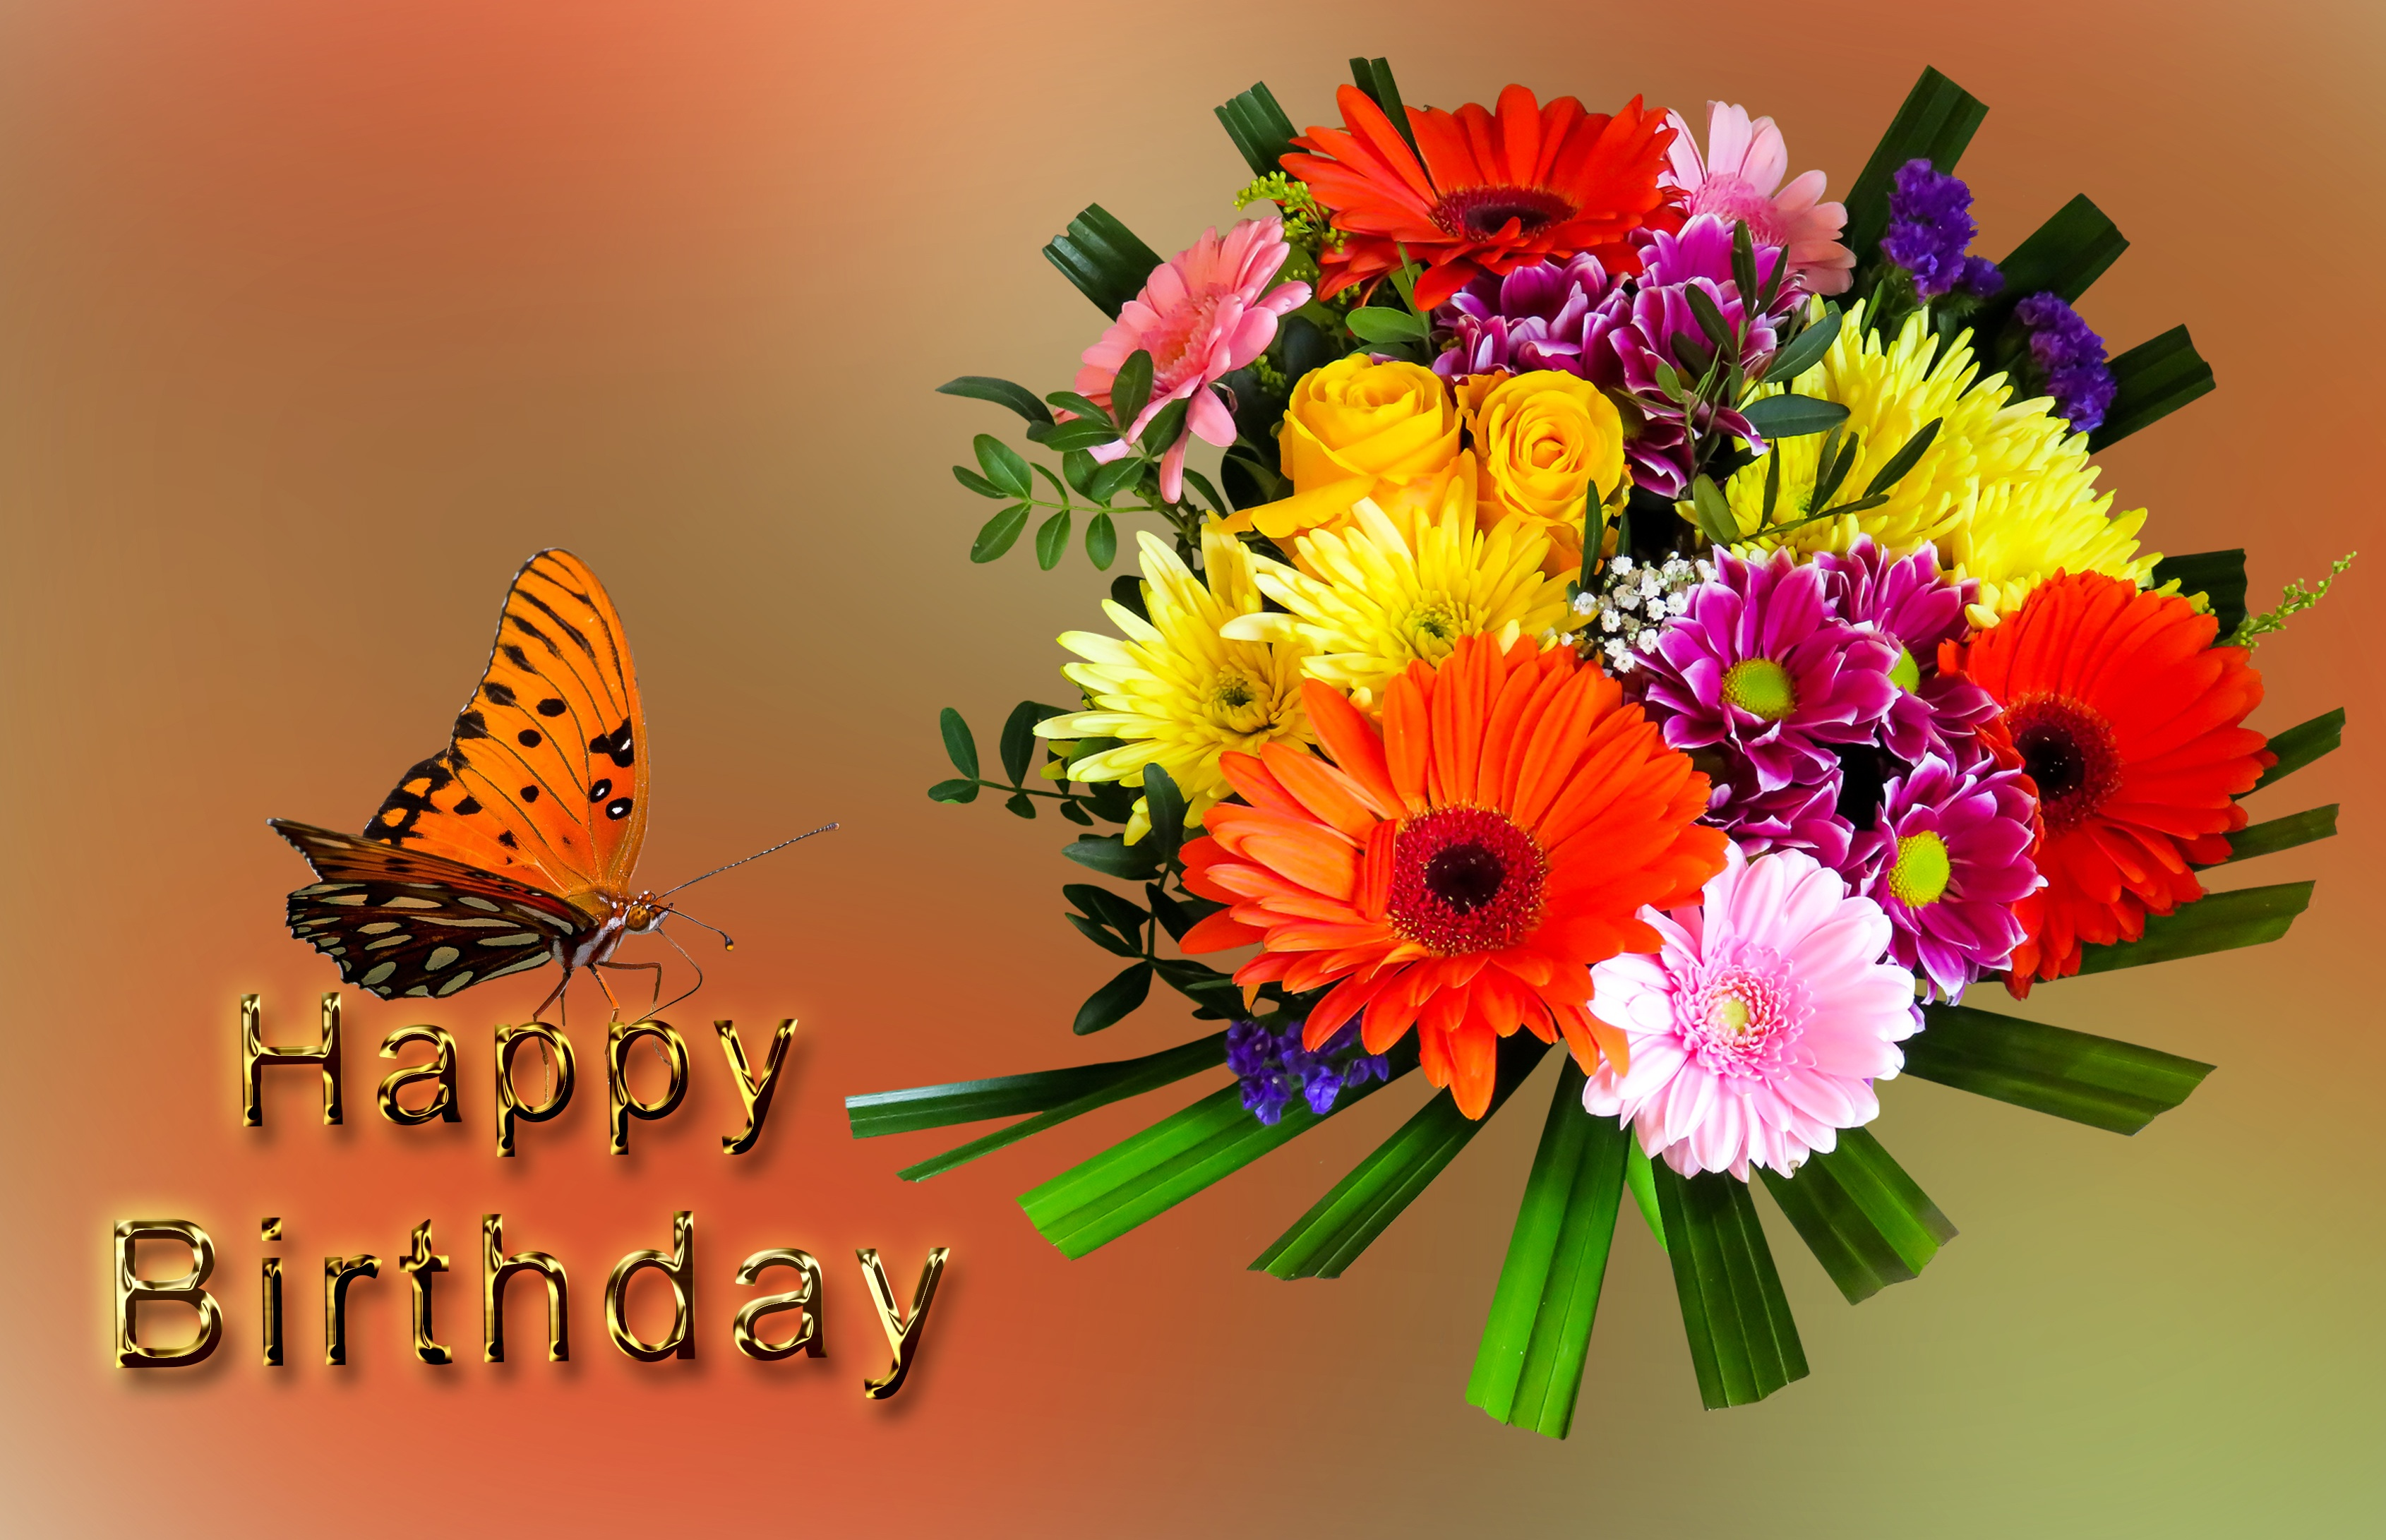 Birthday Greeting Card With Butterfly And Flower Bouquet Free Image